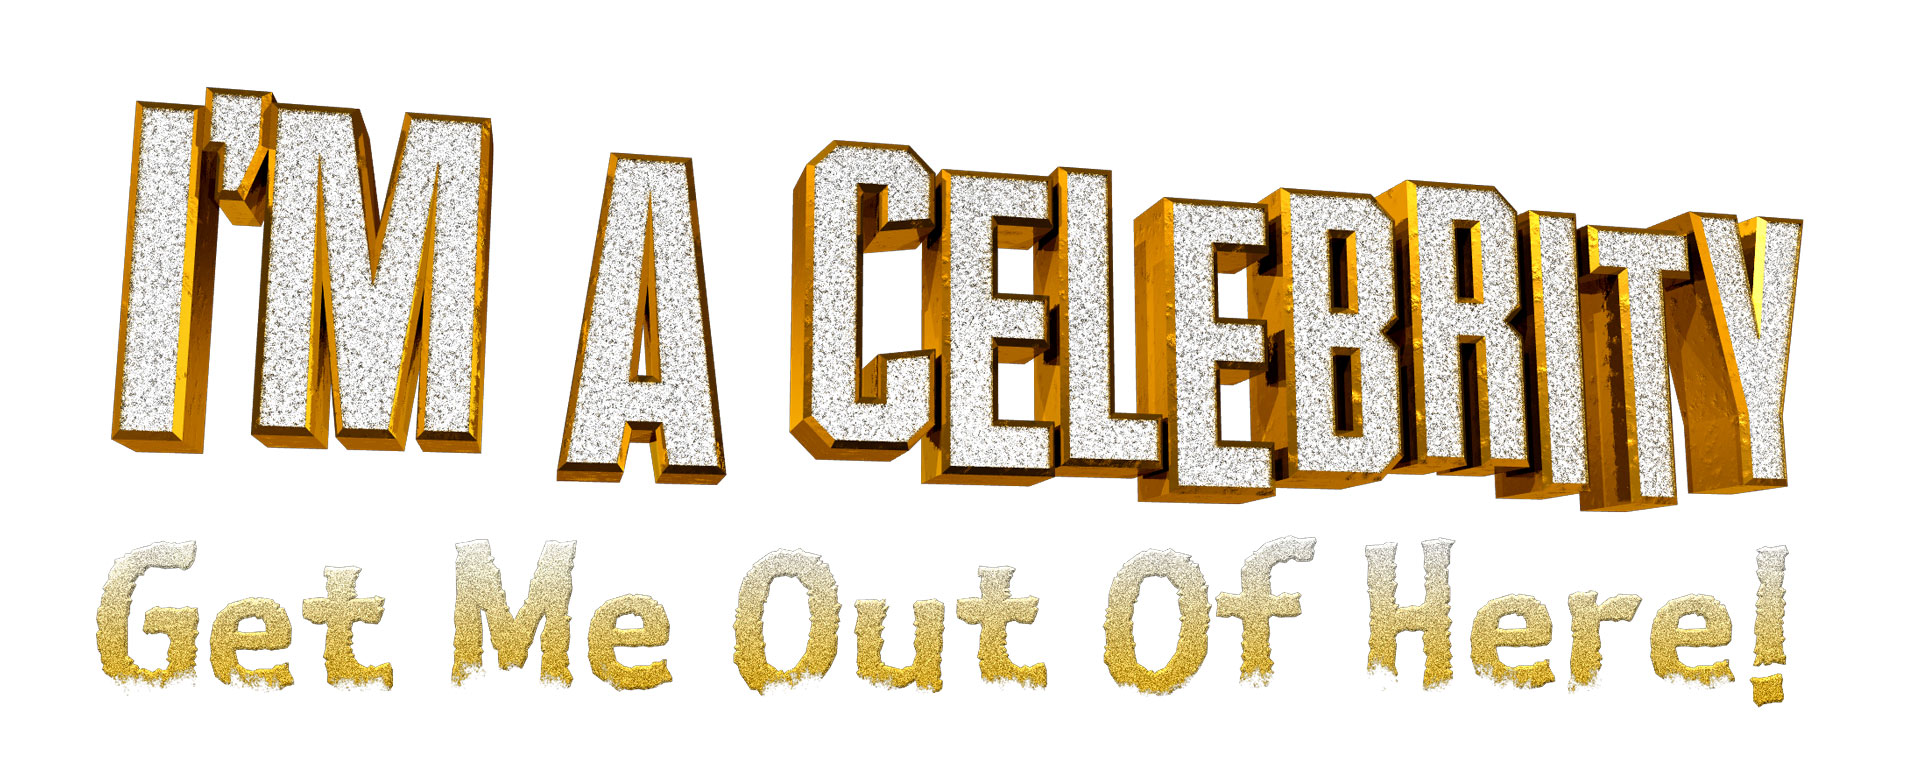 I'm a Celebrity...Get me Out of here logo